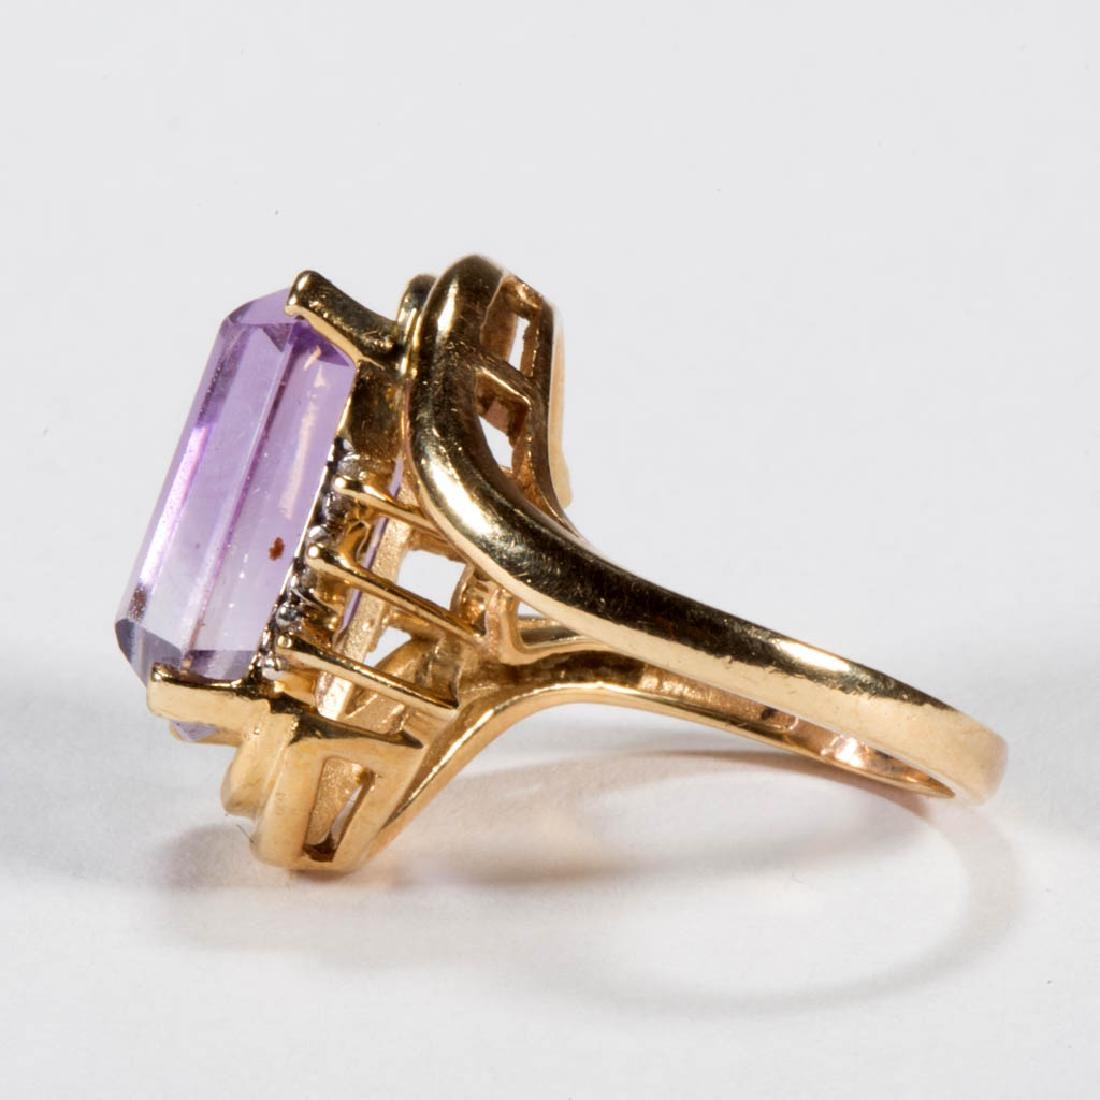 VINTAGE 14K GOLD AND AMETHYST LADY'S RING - 2